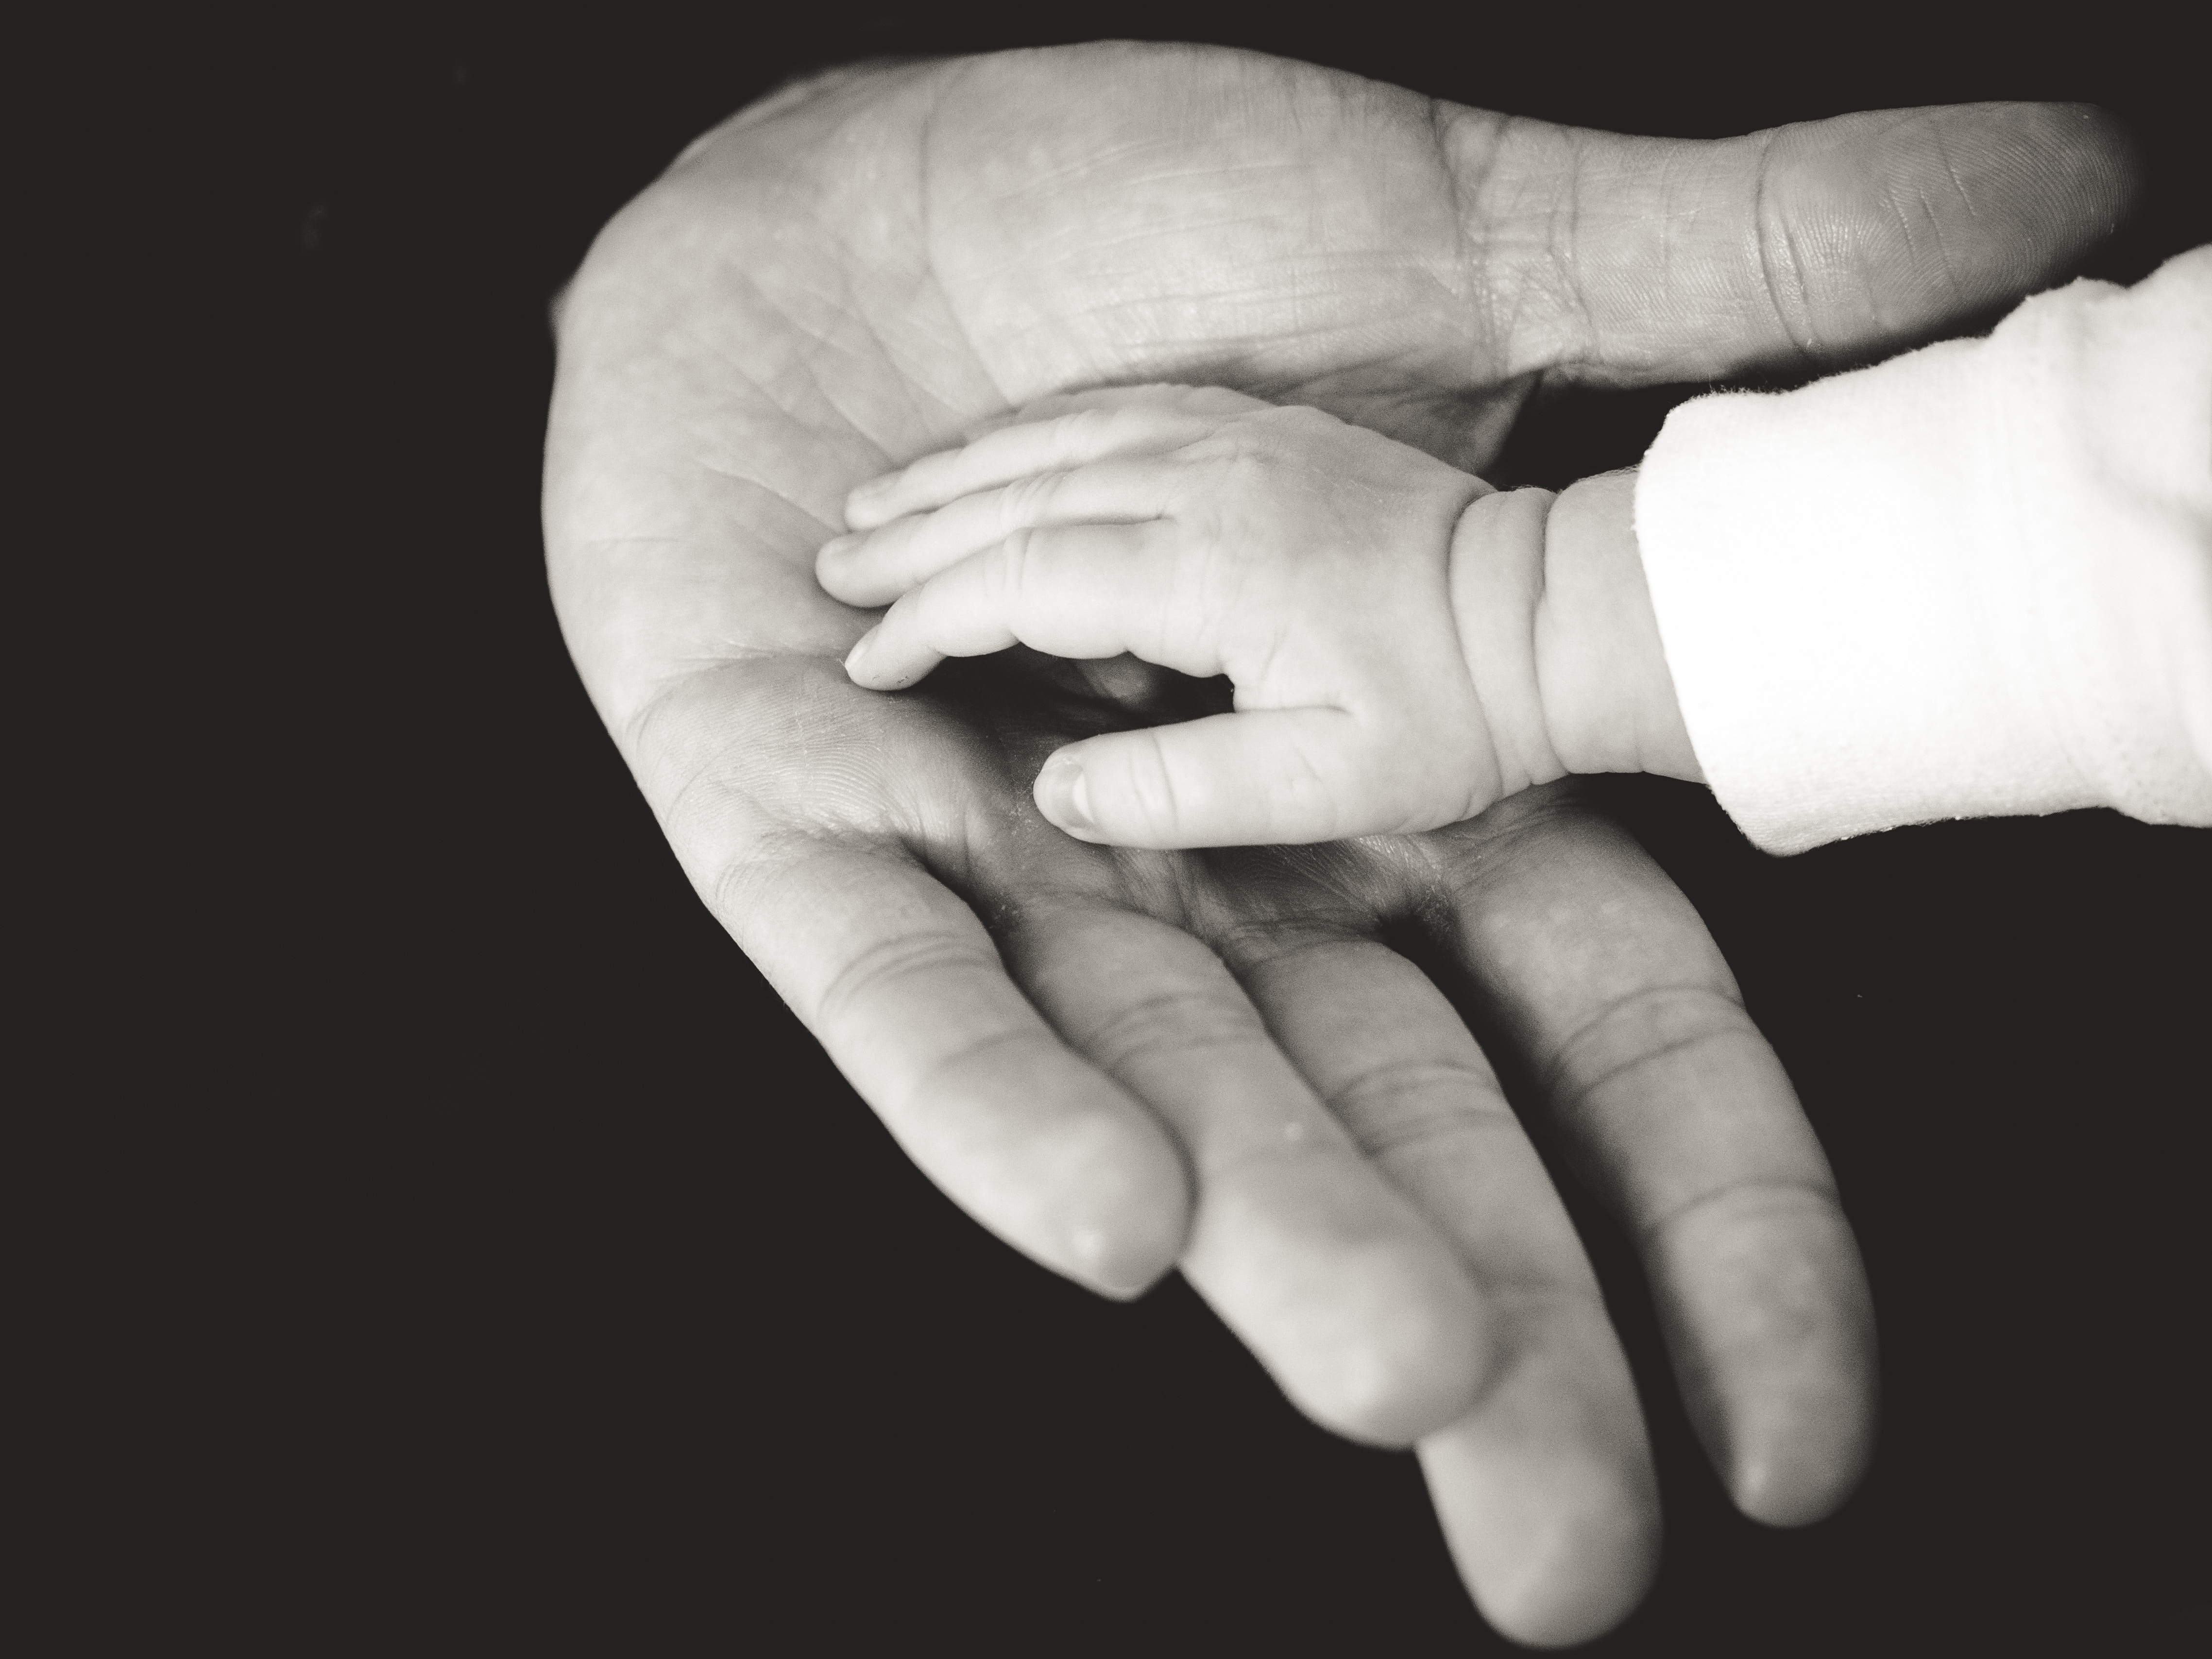 father and son's hands